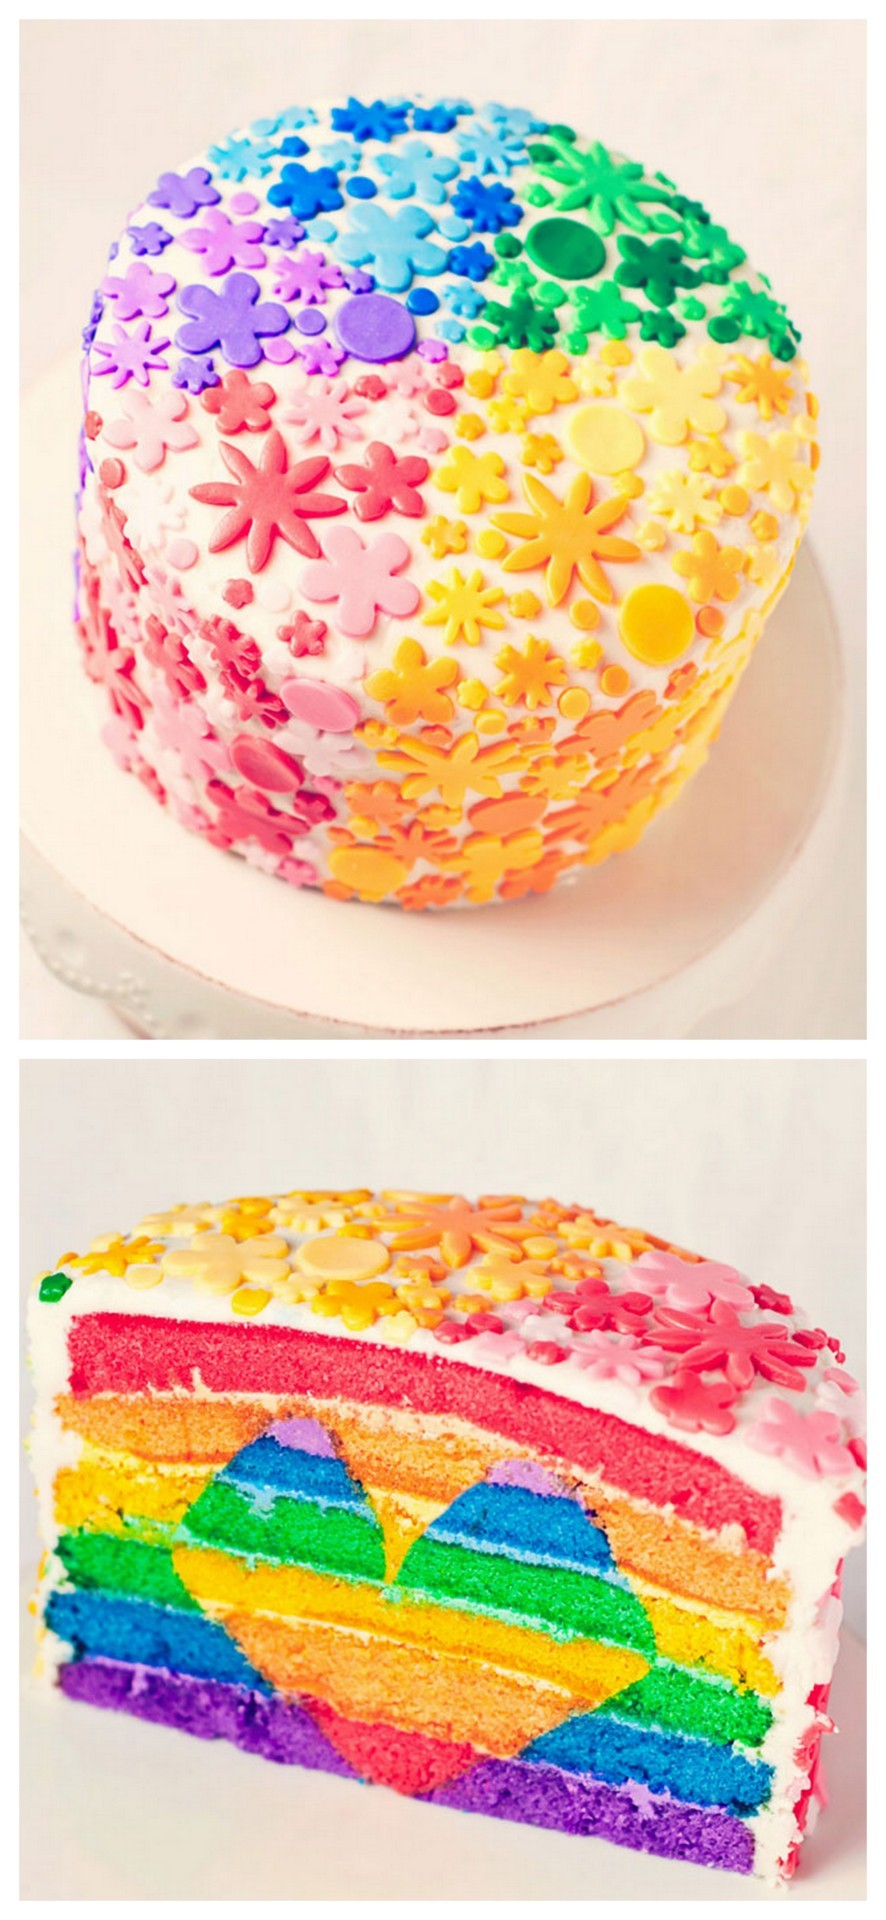 truebluemeandyou:  DIY Rainbow Heart Cake. What a labor of love - Fondant flowers and all! And if any of you brave souls would like to make this, there is a tutorial by Bakingdom here with lots more colorful gorgeous photos.  Holy Edible Color! Too cute cake!